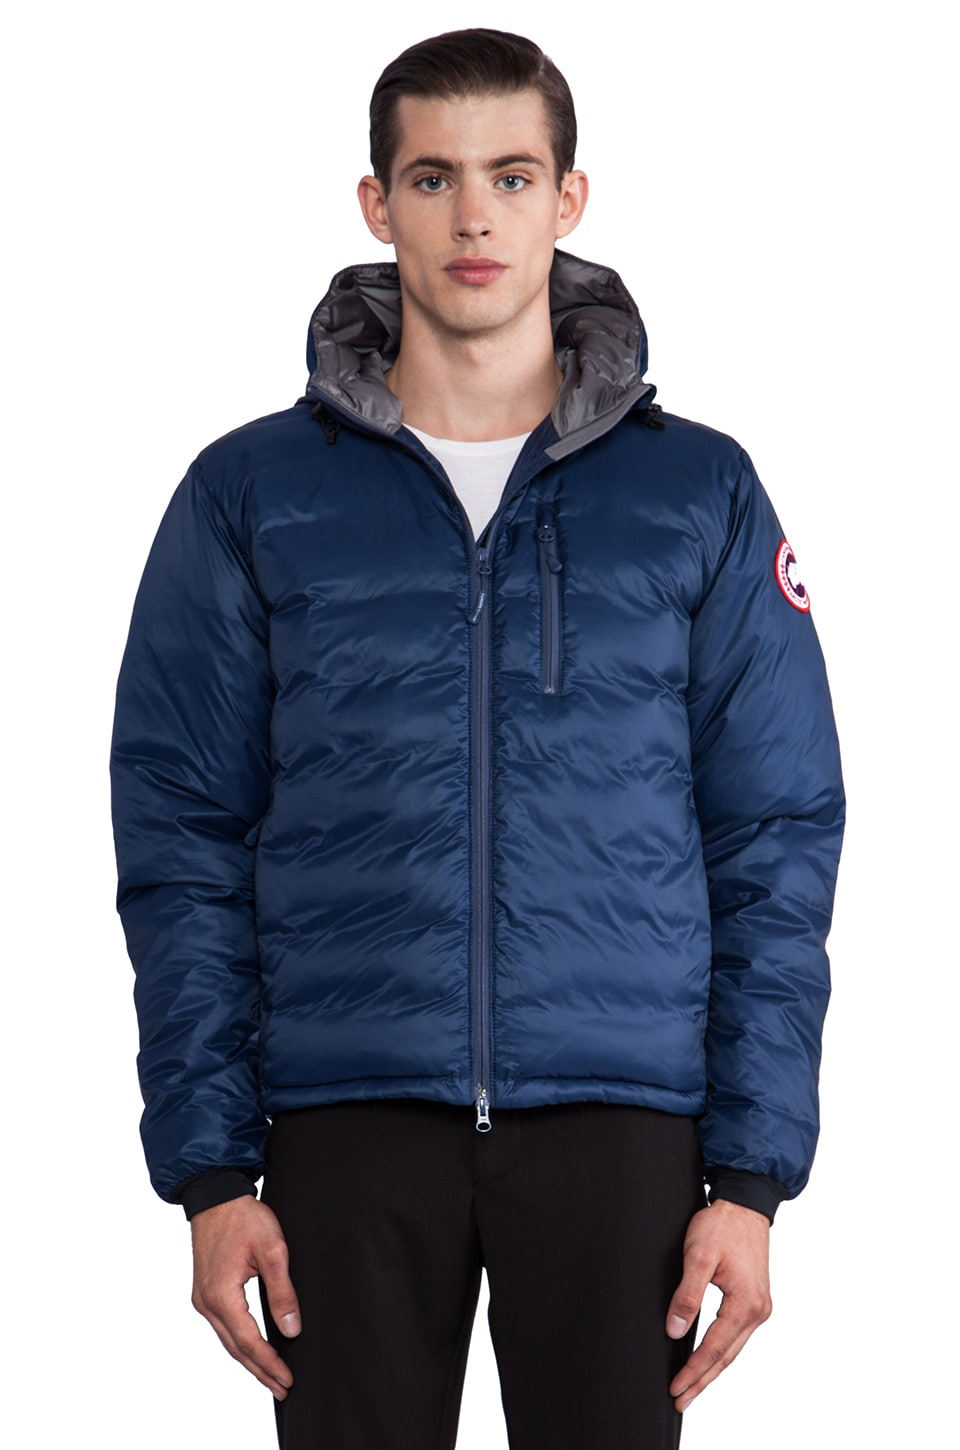 Canada Goose Lodge Hoody in Spirit Discontinued